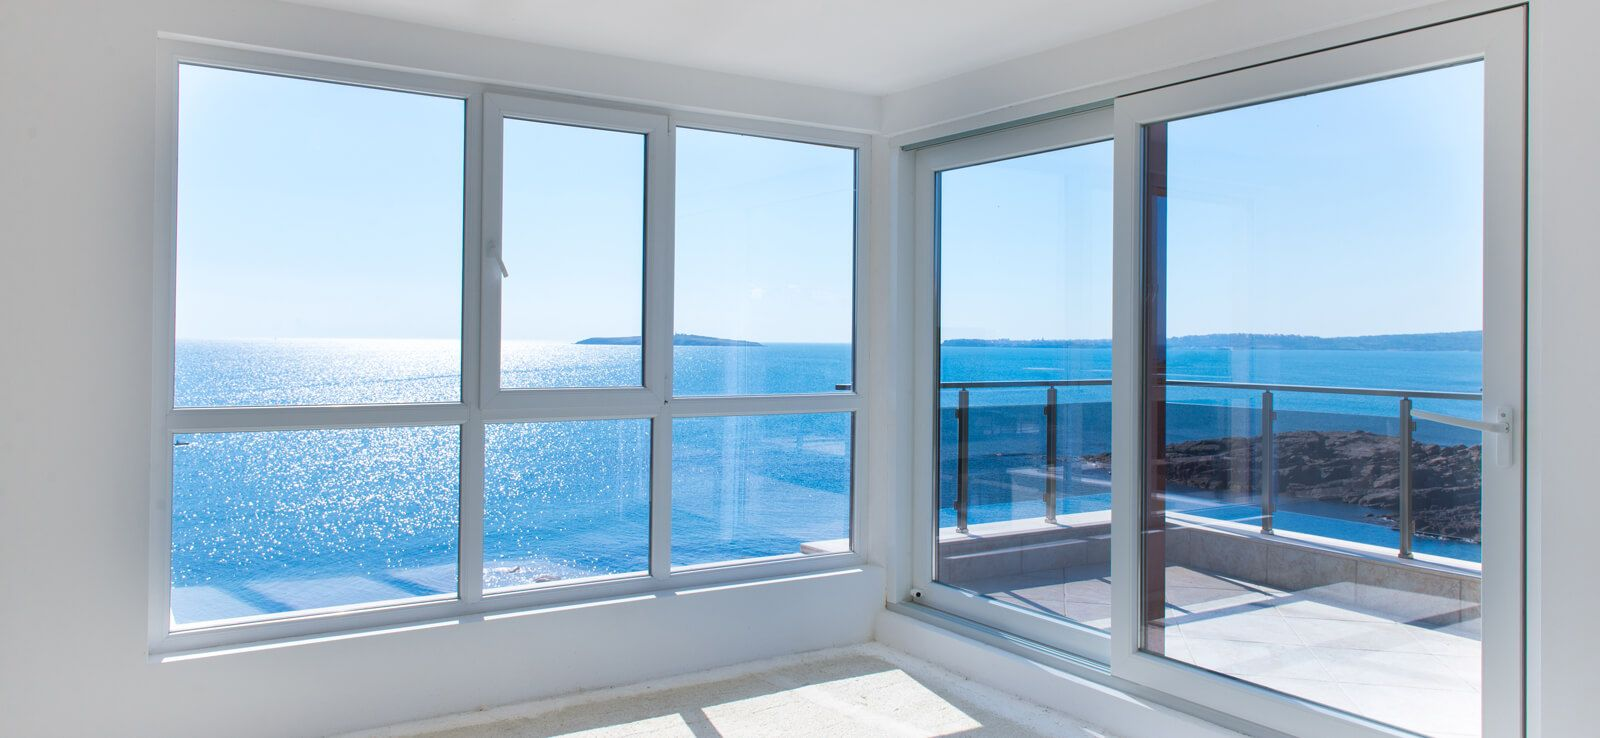 Impact windows Florida the best investment for your home